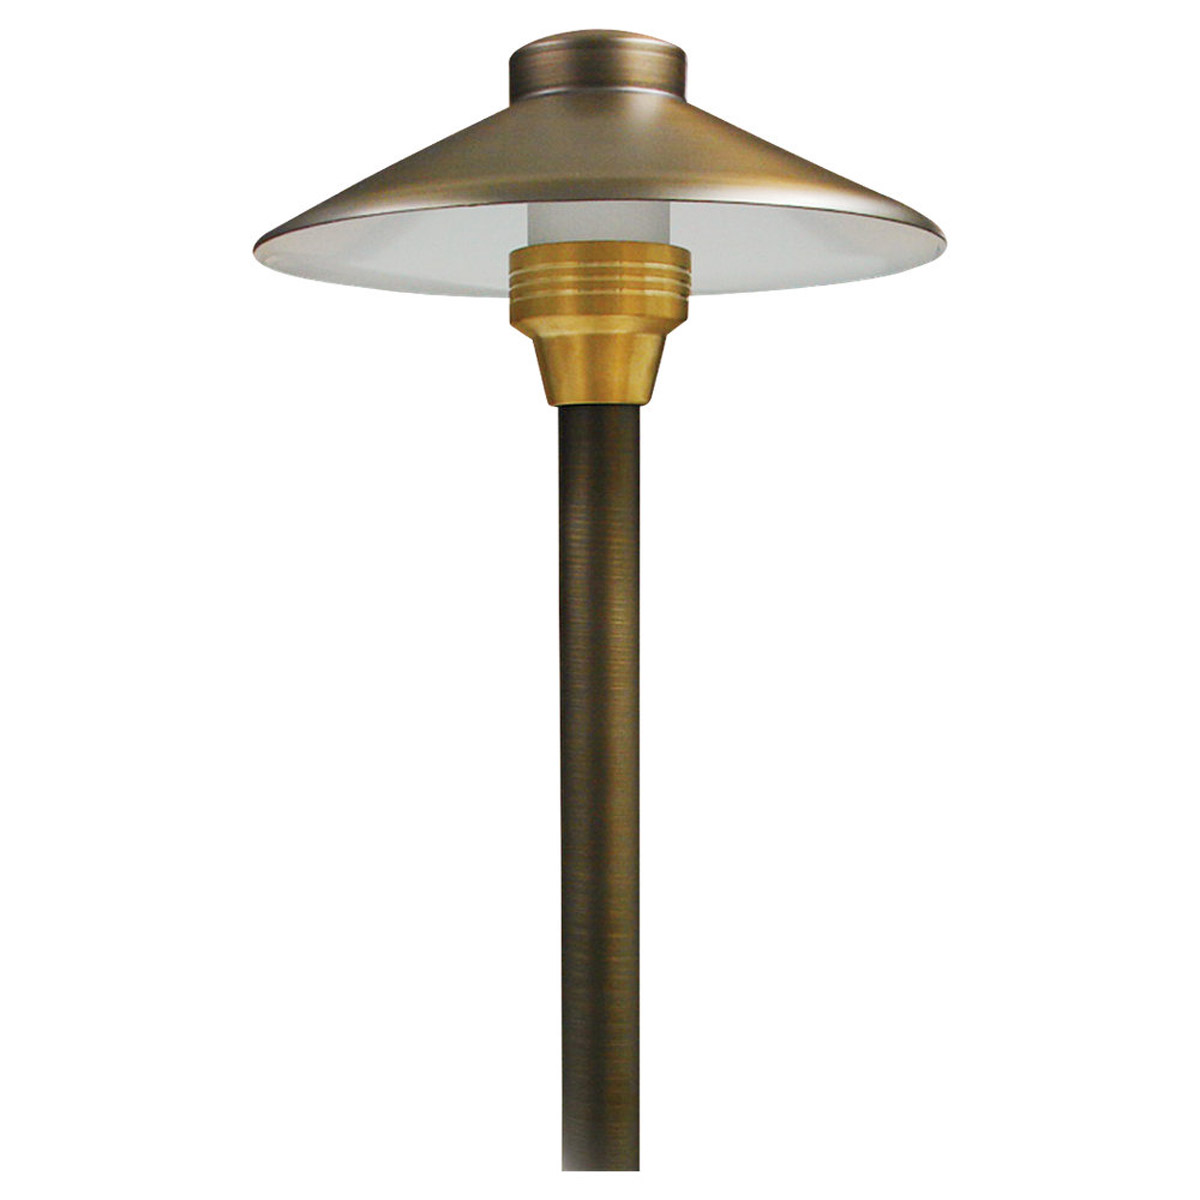 Sea Gull Lighting Meridian 1 Light Landscape Path Light in Weathered Brass 91188-147 photo